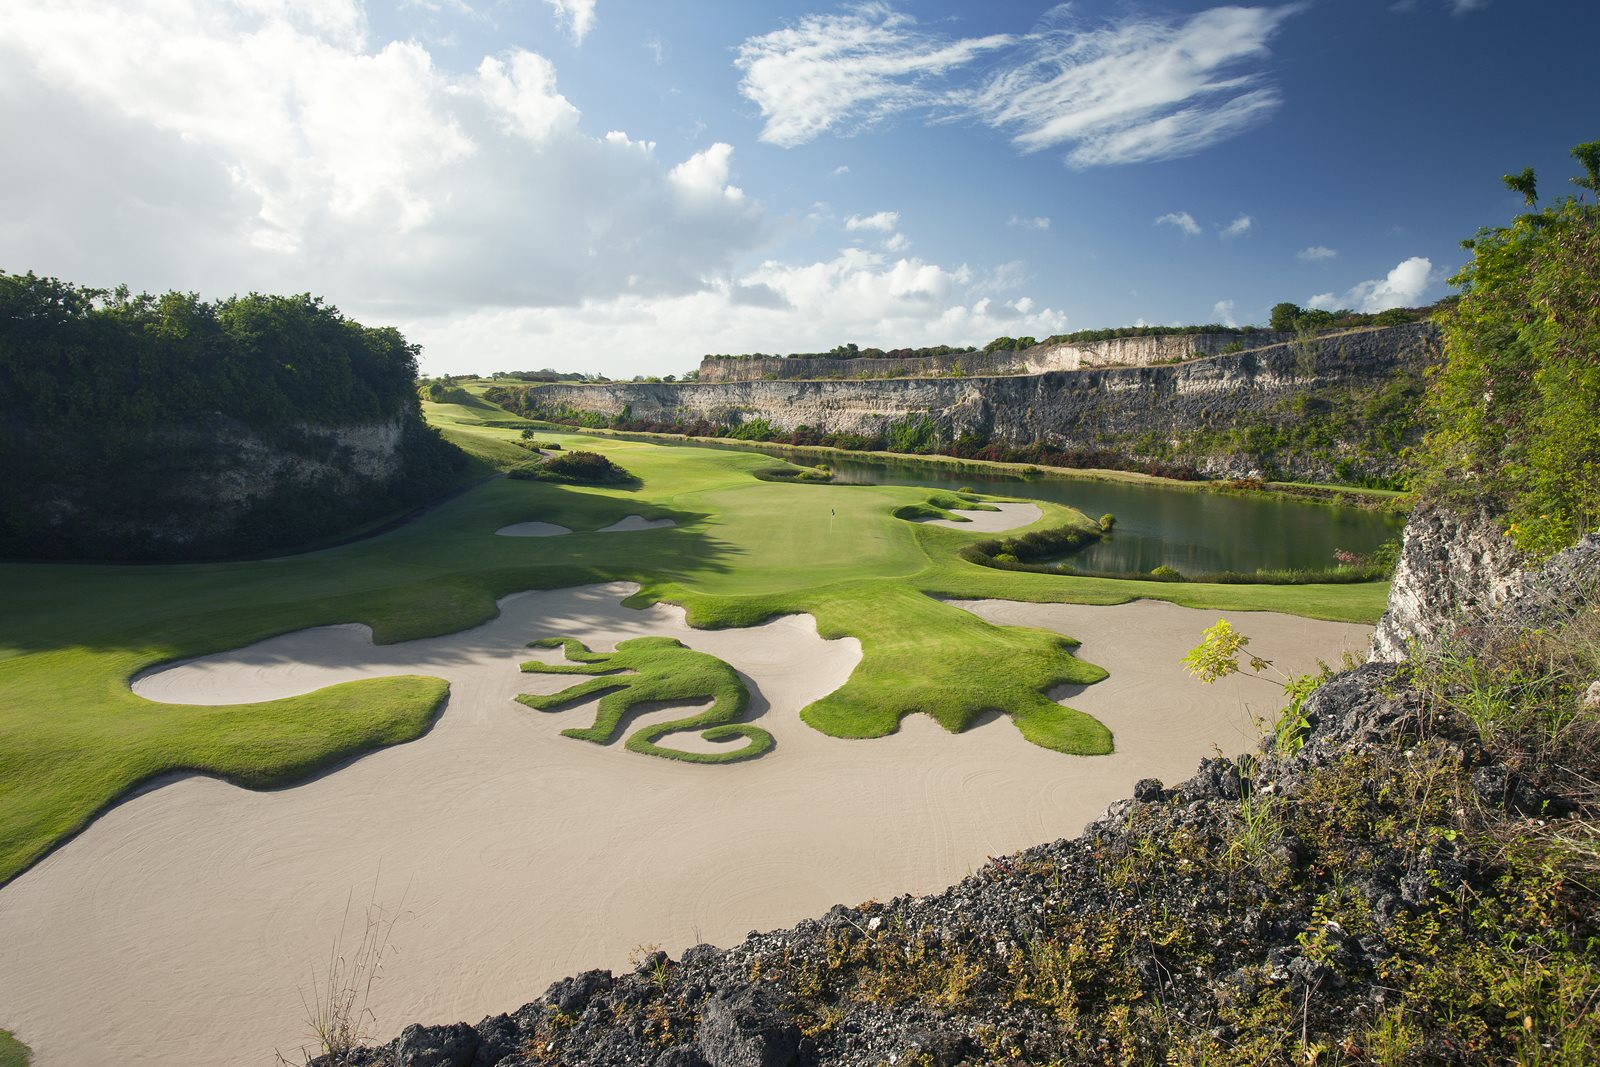 The Green Monkey Signature Hole